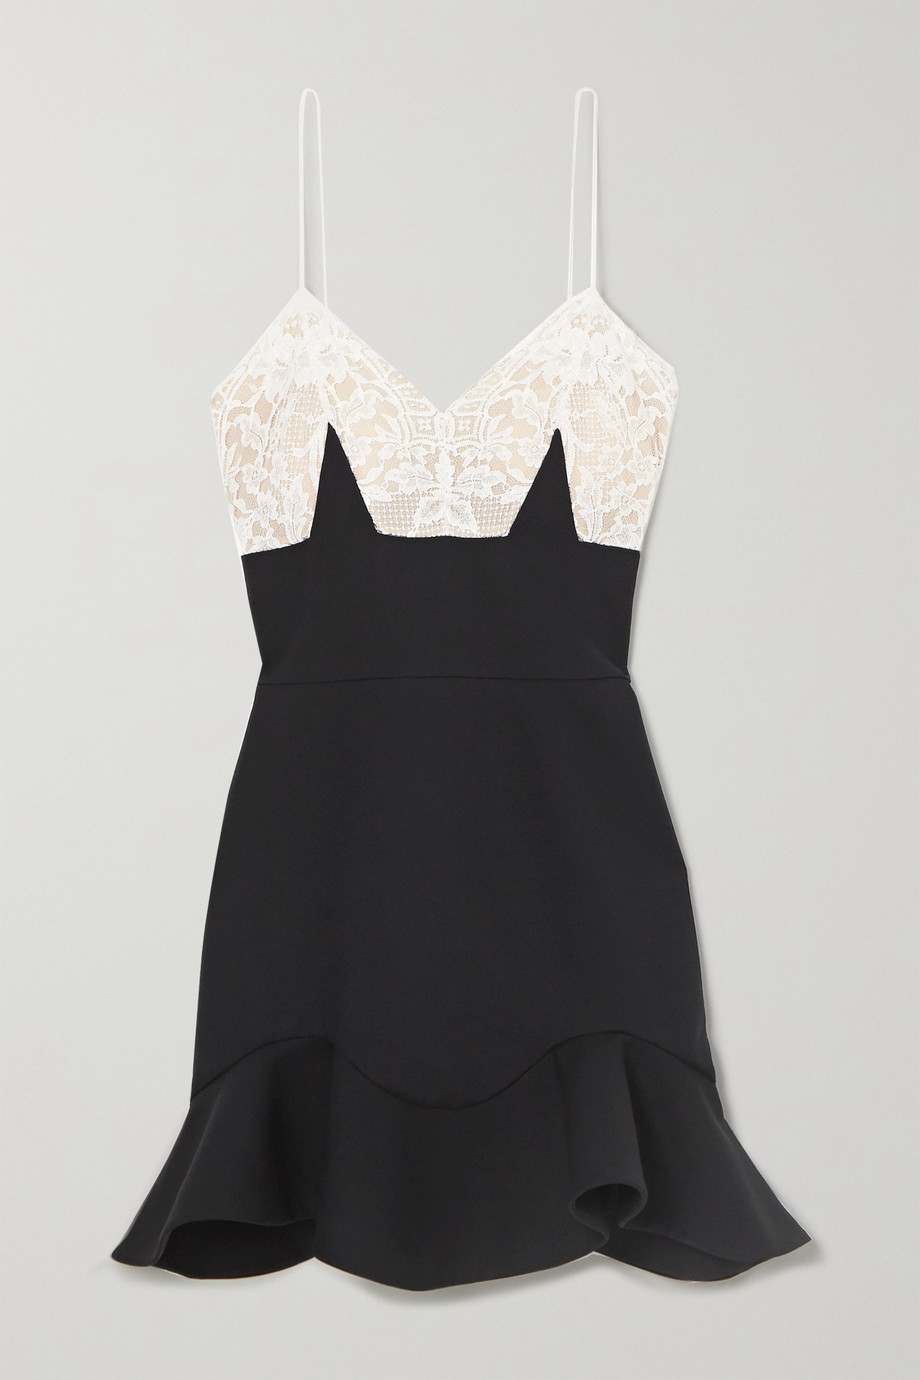 ALEXANDER MCQUEEN Wool-blend and lace mini dress